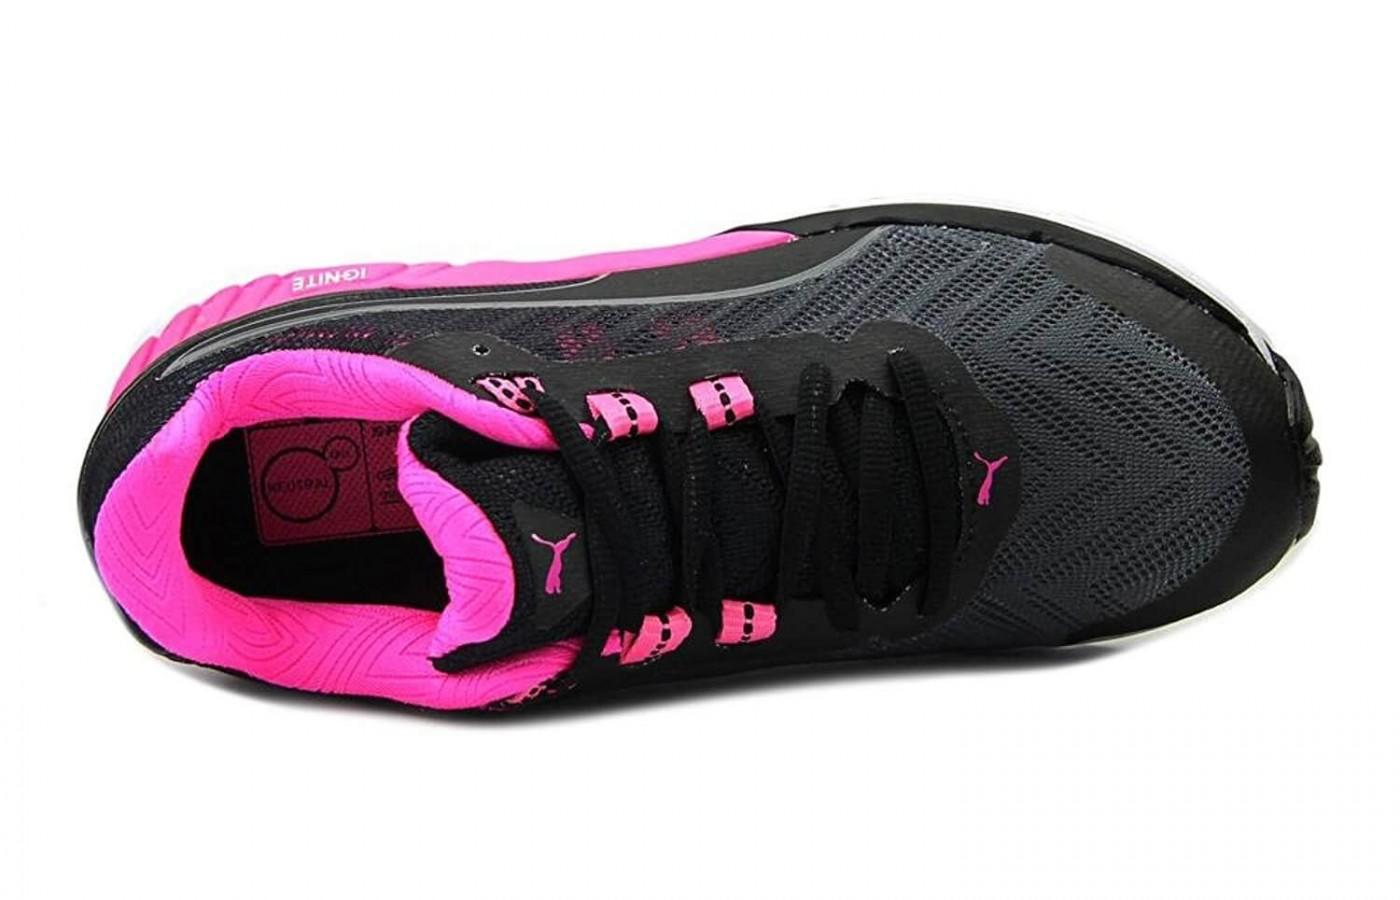 The redesigned upper features a more breathable, lightweight mesh.